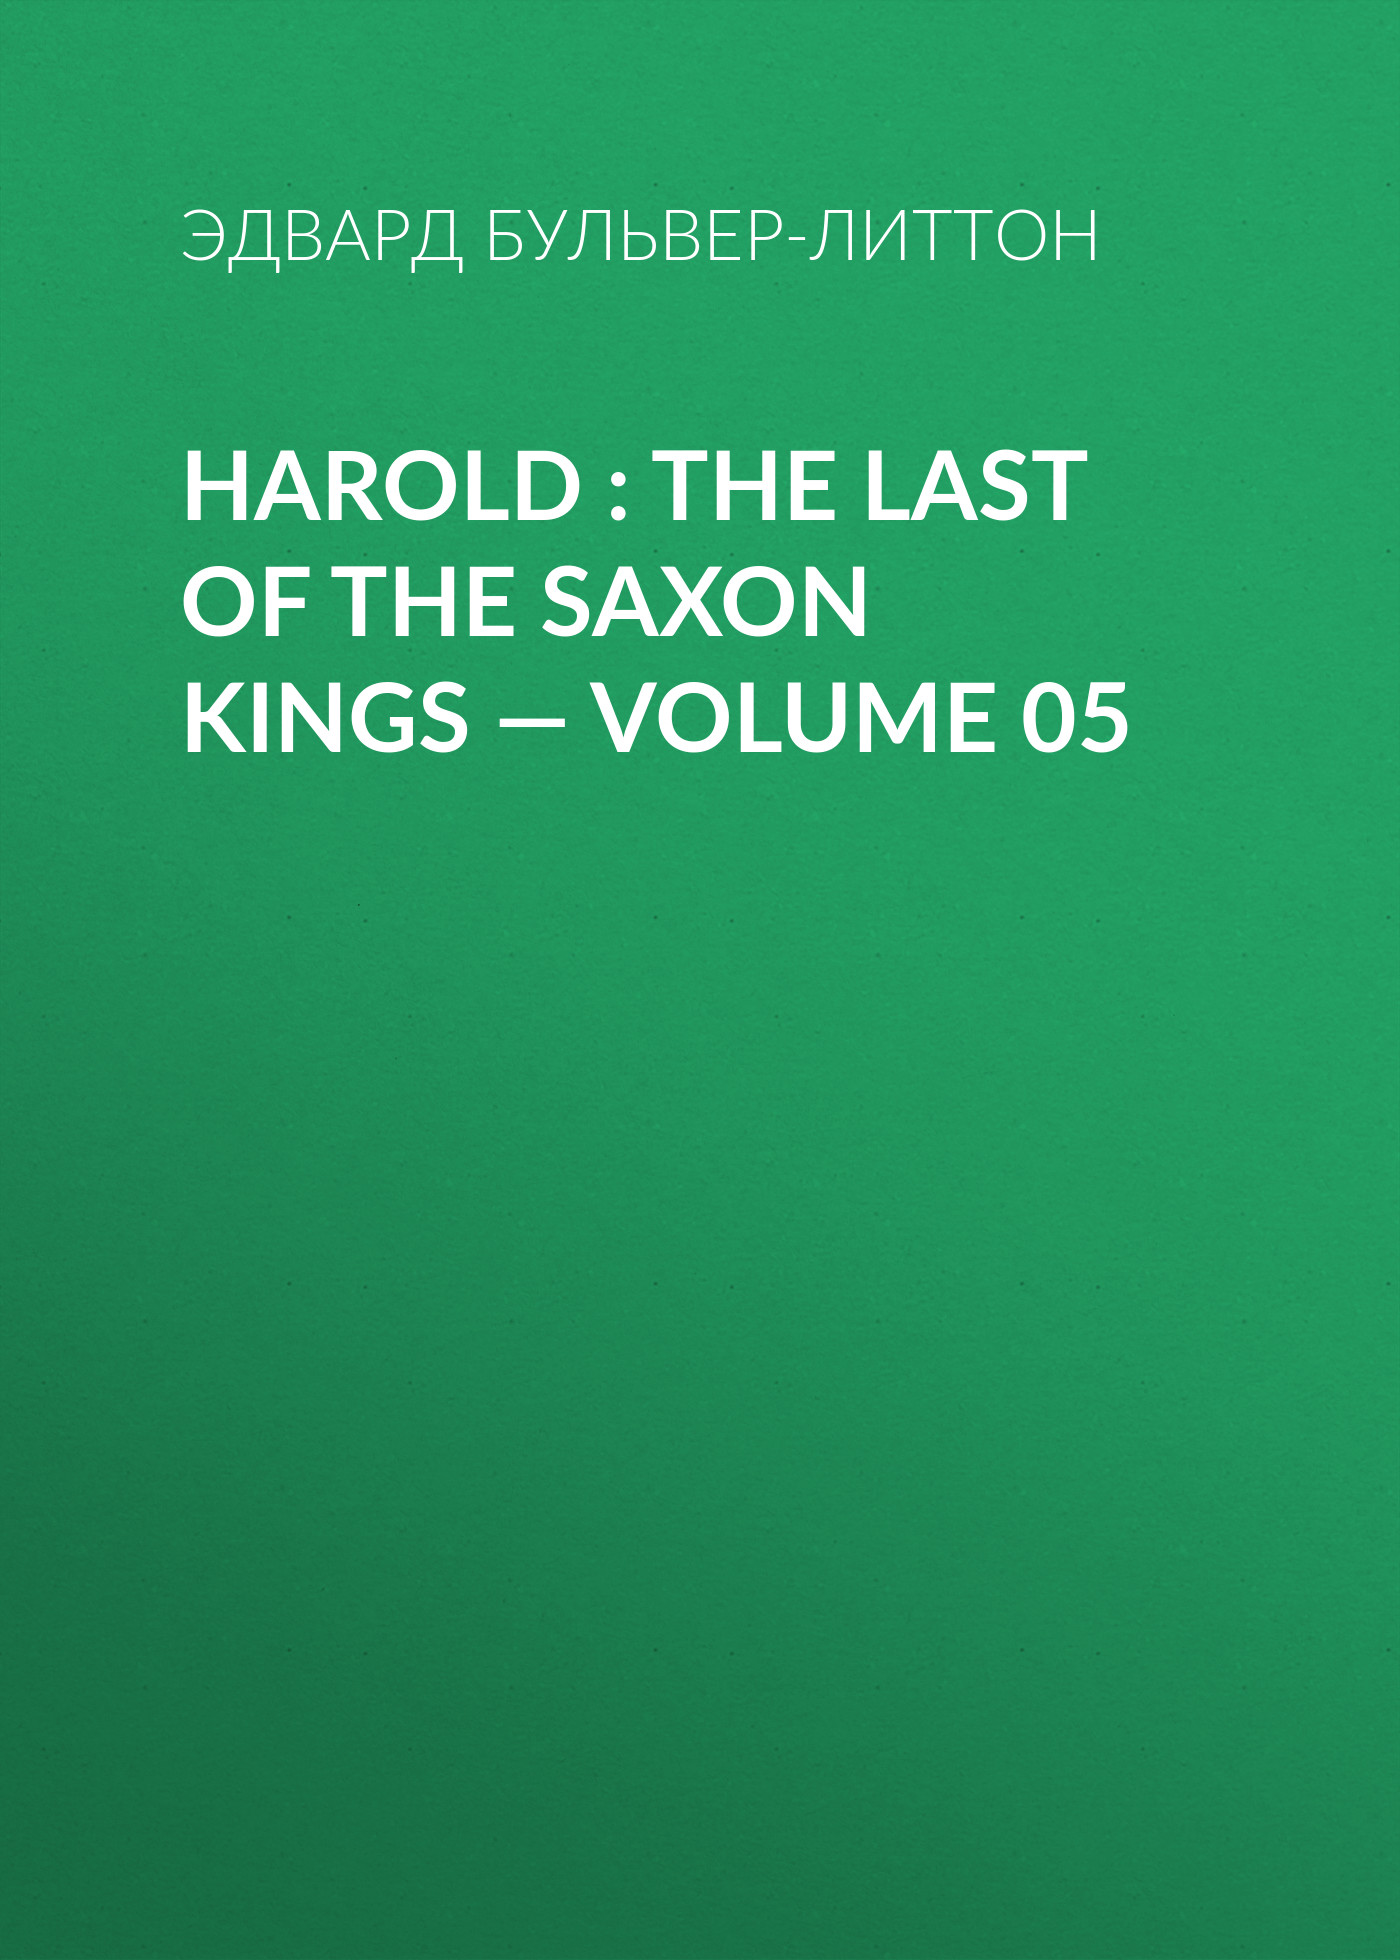 Эдвард Бульвер-Литтон Harold : the Last of the Saxon Kings — Volume 05 эдвард бульвер литтон harold the last of the saxon kings volume 10